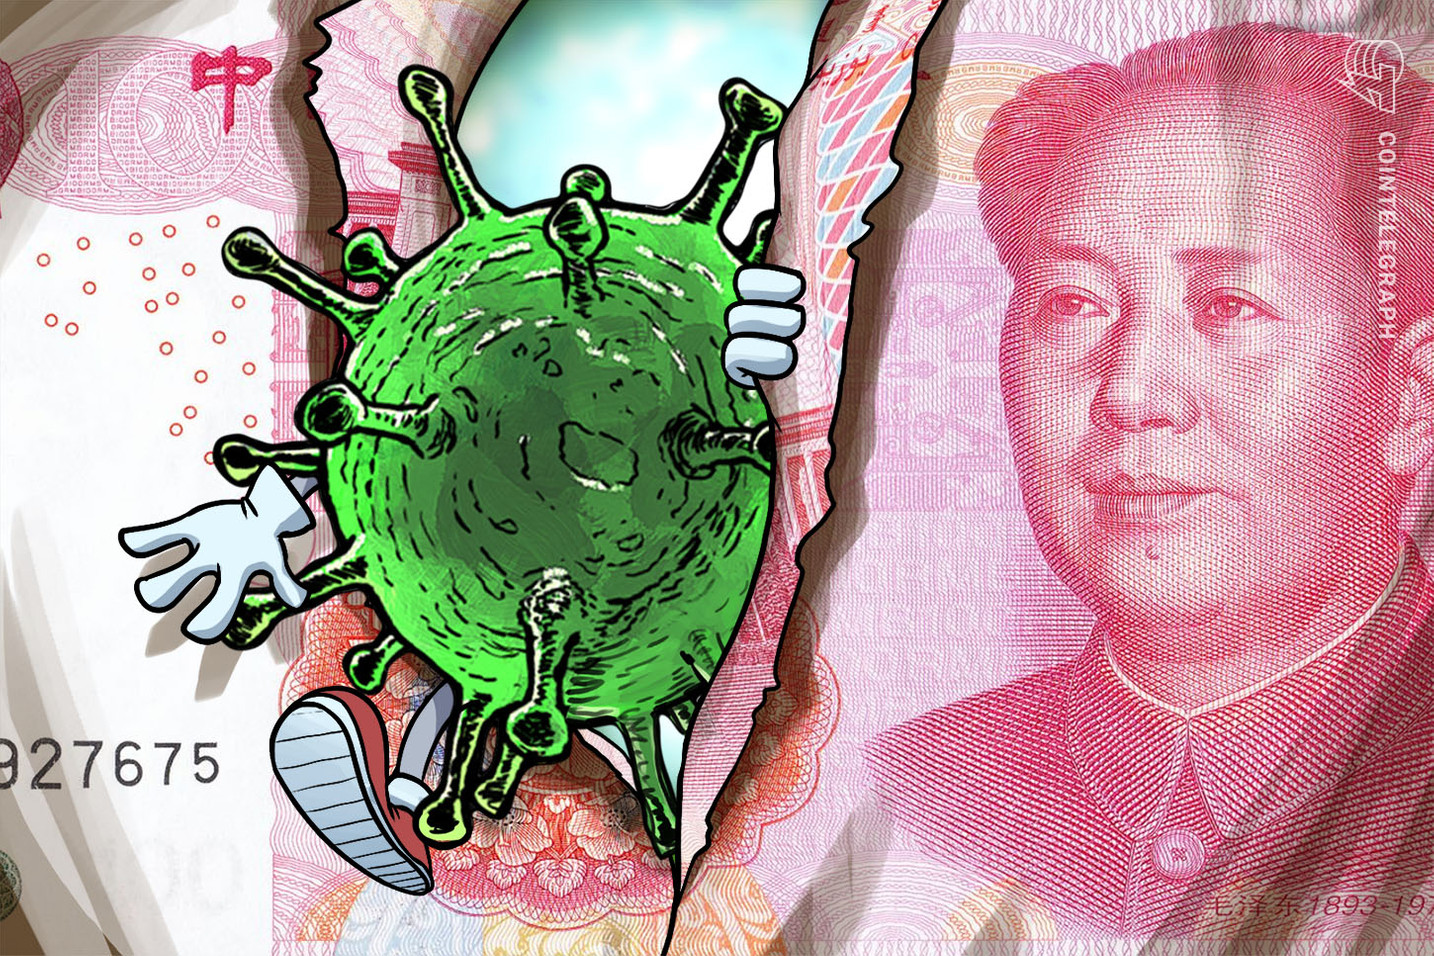 Chinese Quarantine Cash to Stop Coronavirus, Not an Issue With Bitcoin